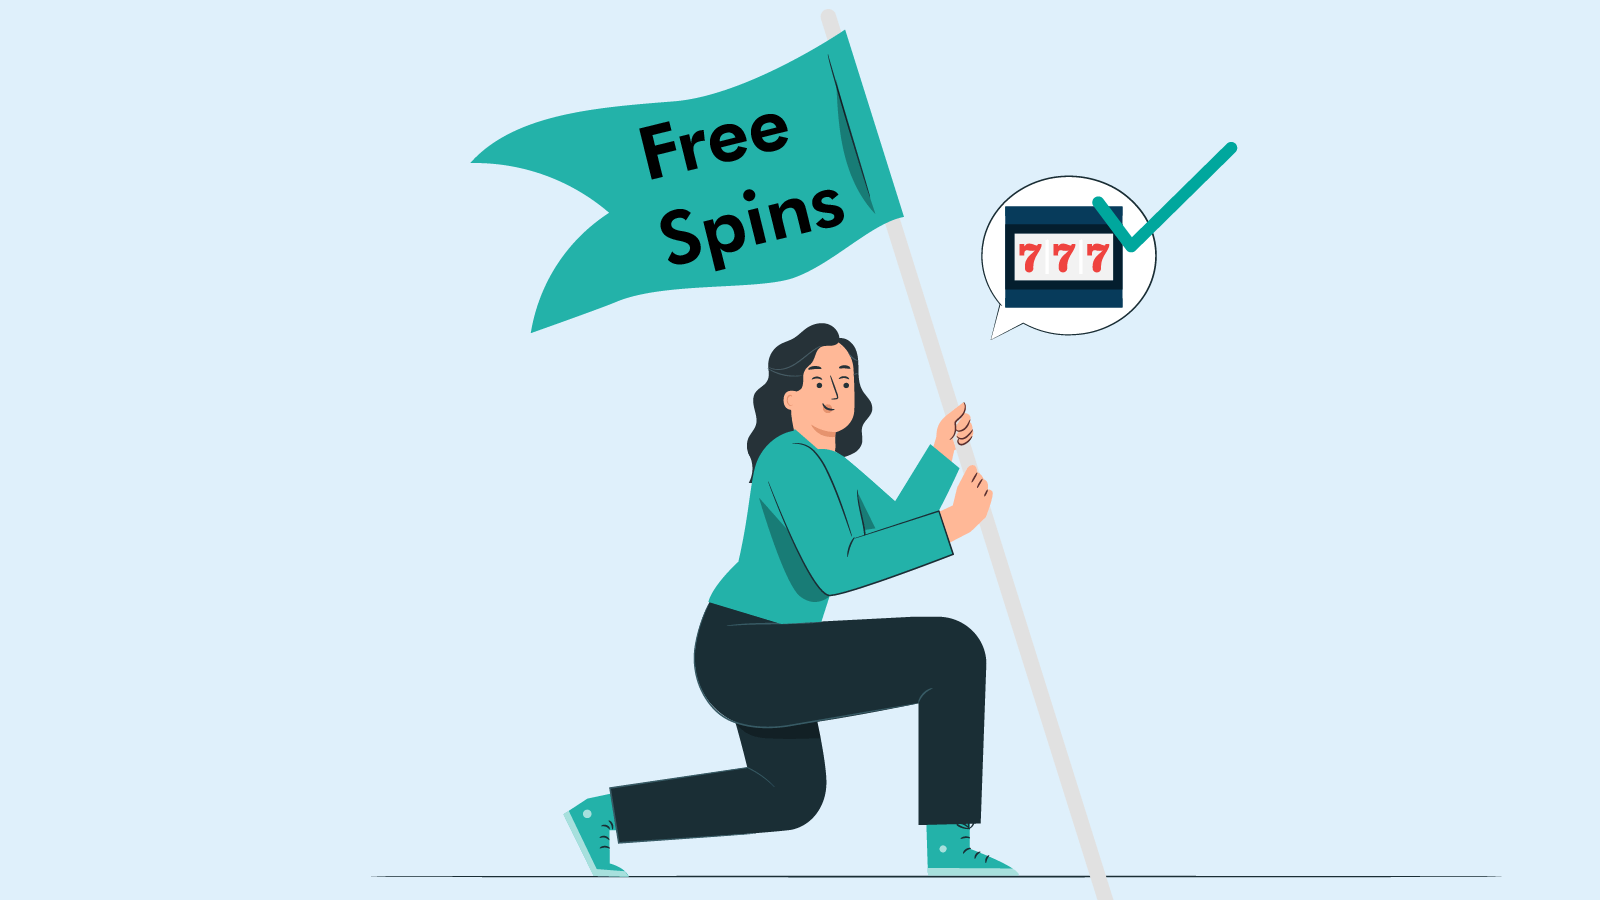 All about 50 free spins from our experts